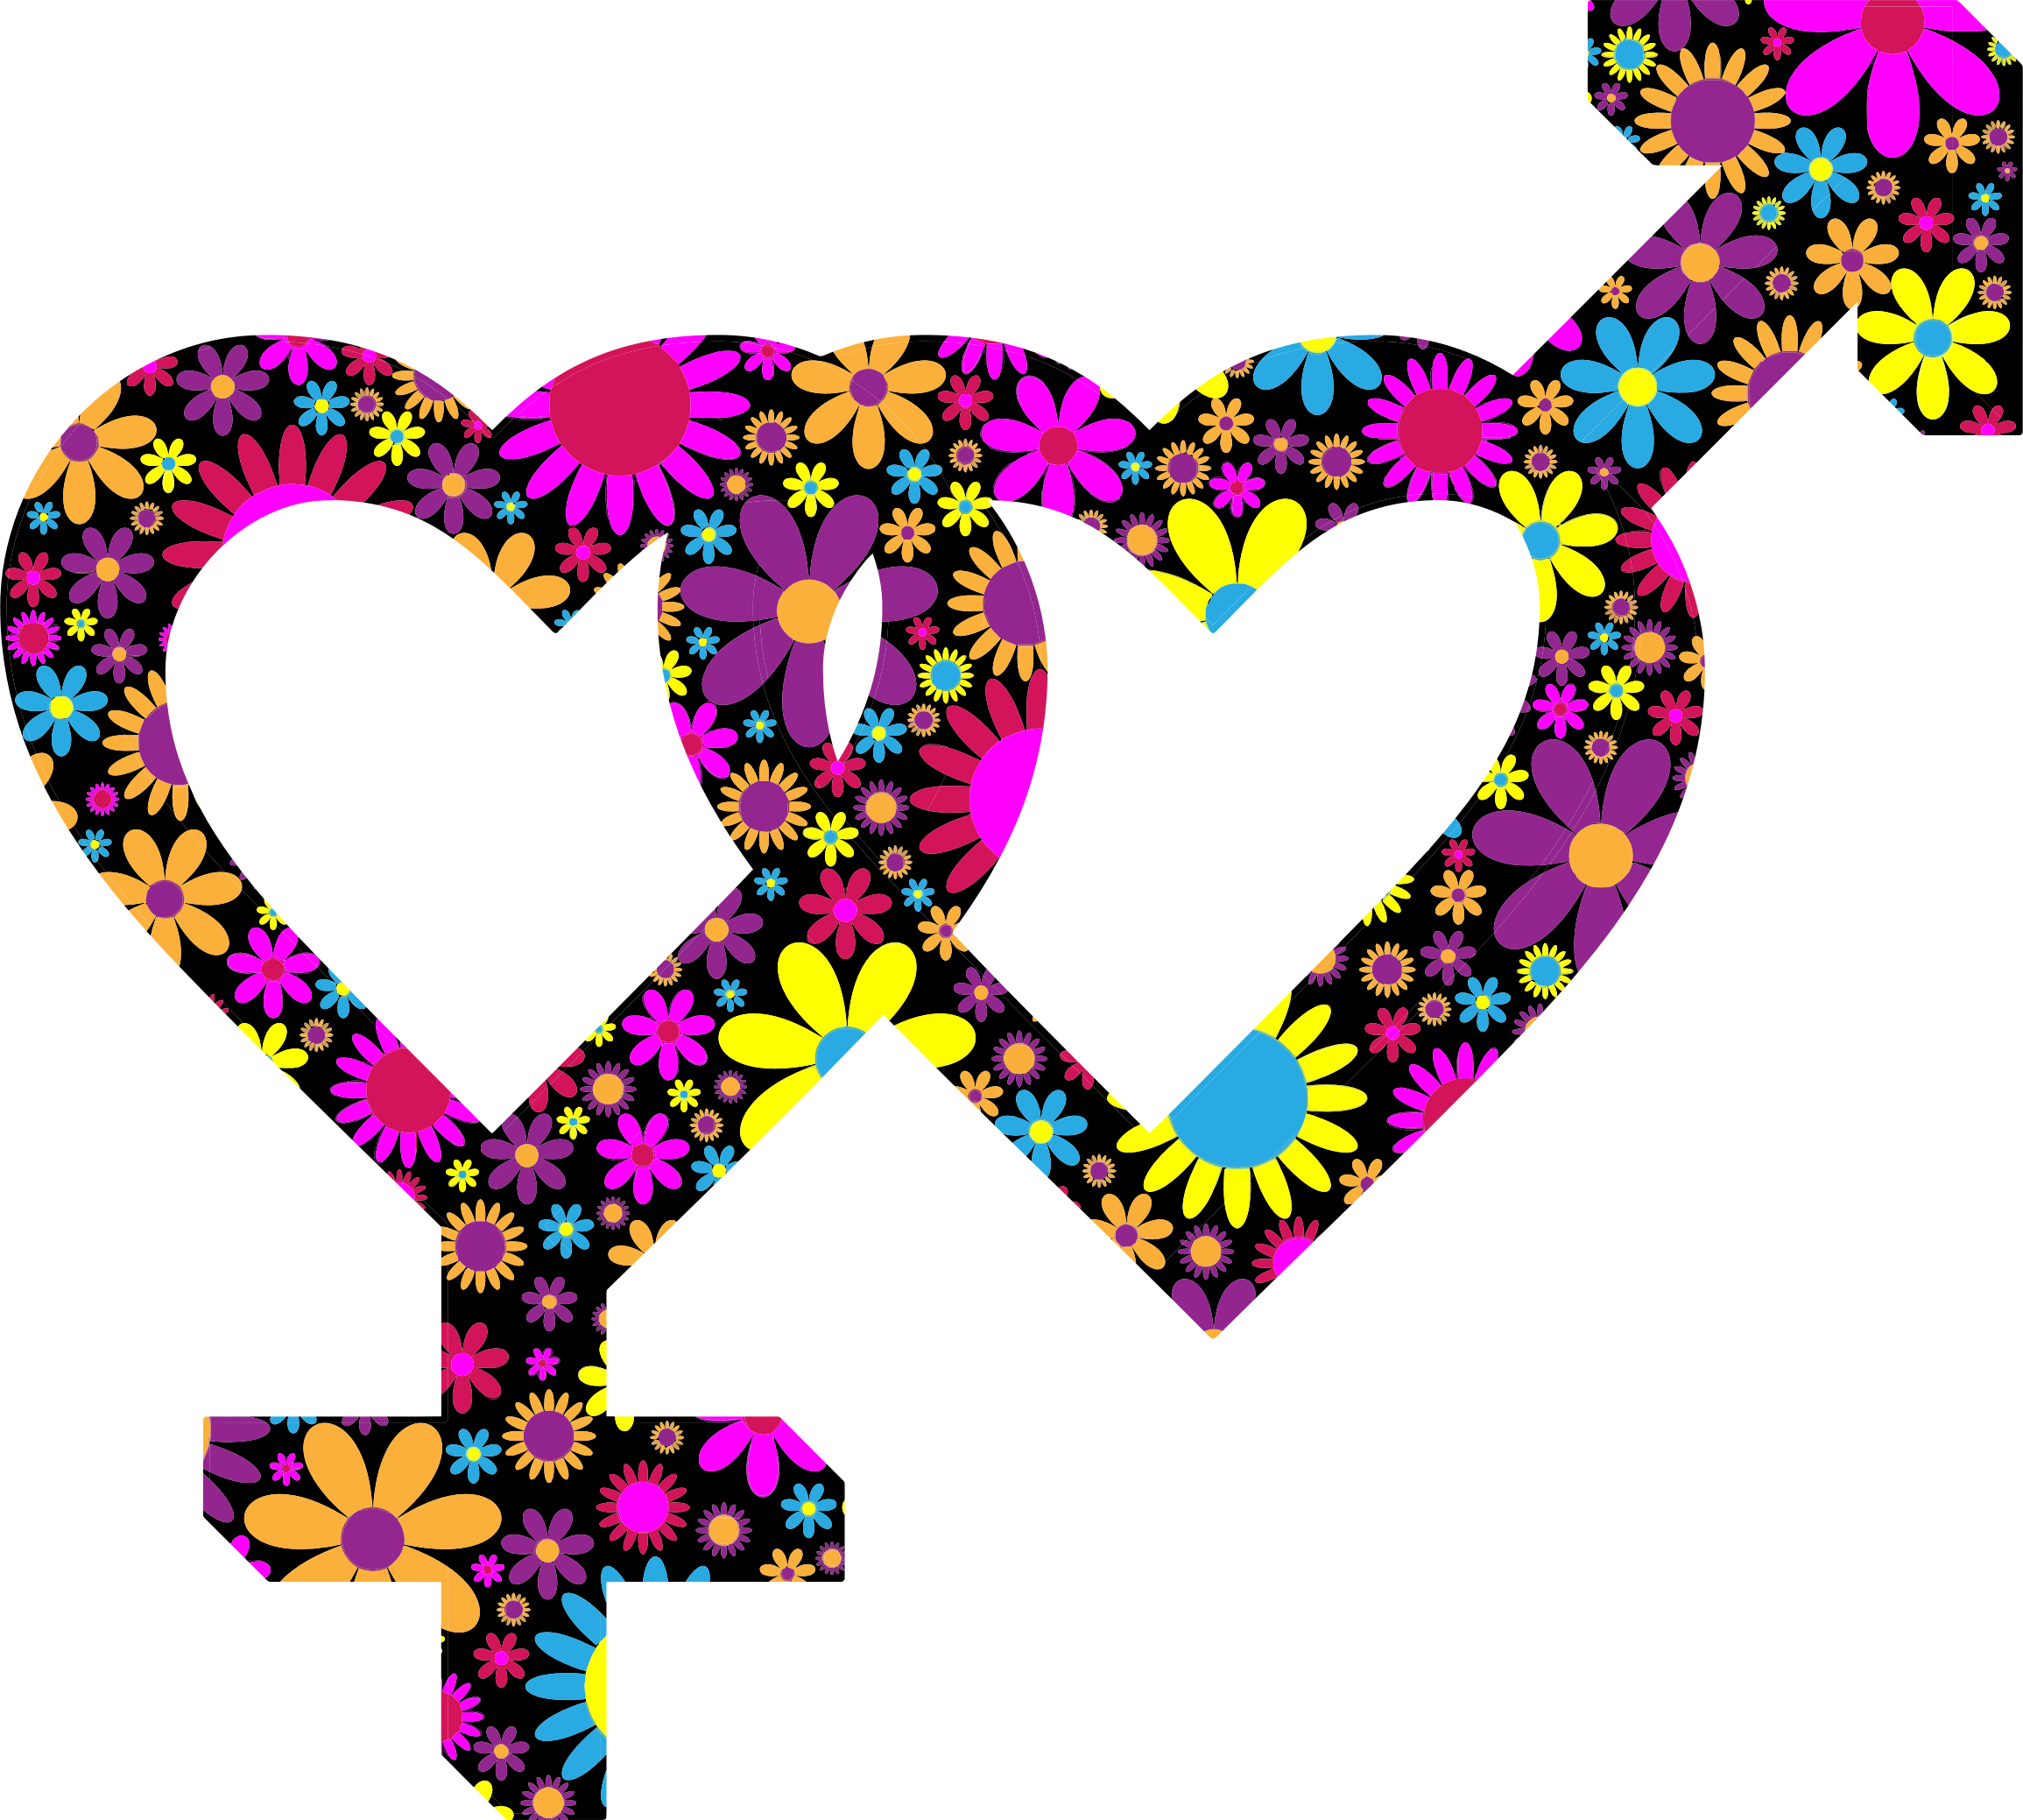 Floral 3d Isometric Intertwined Gender Hearts by GDJ